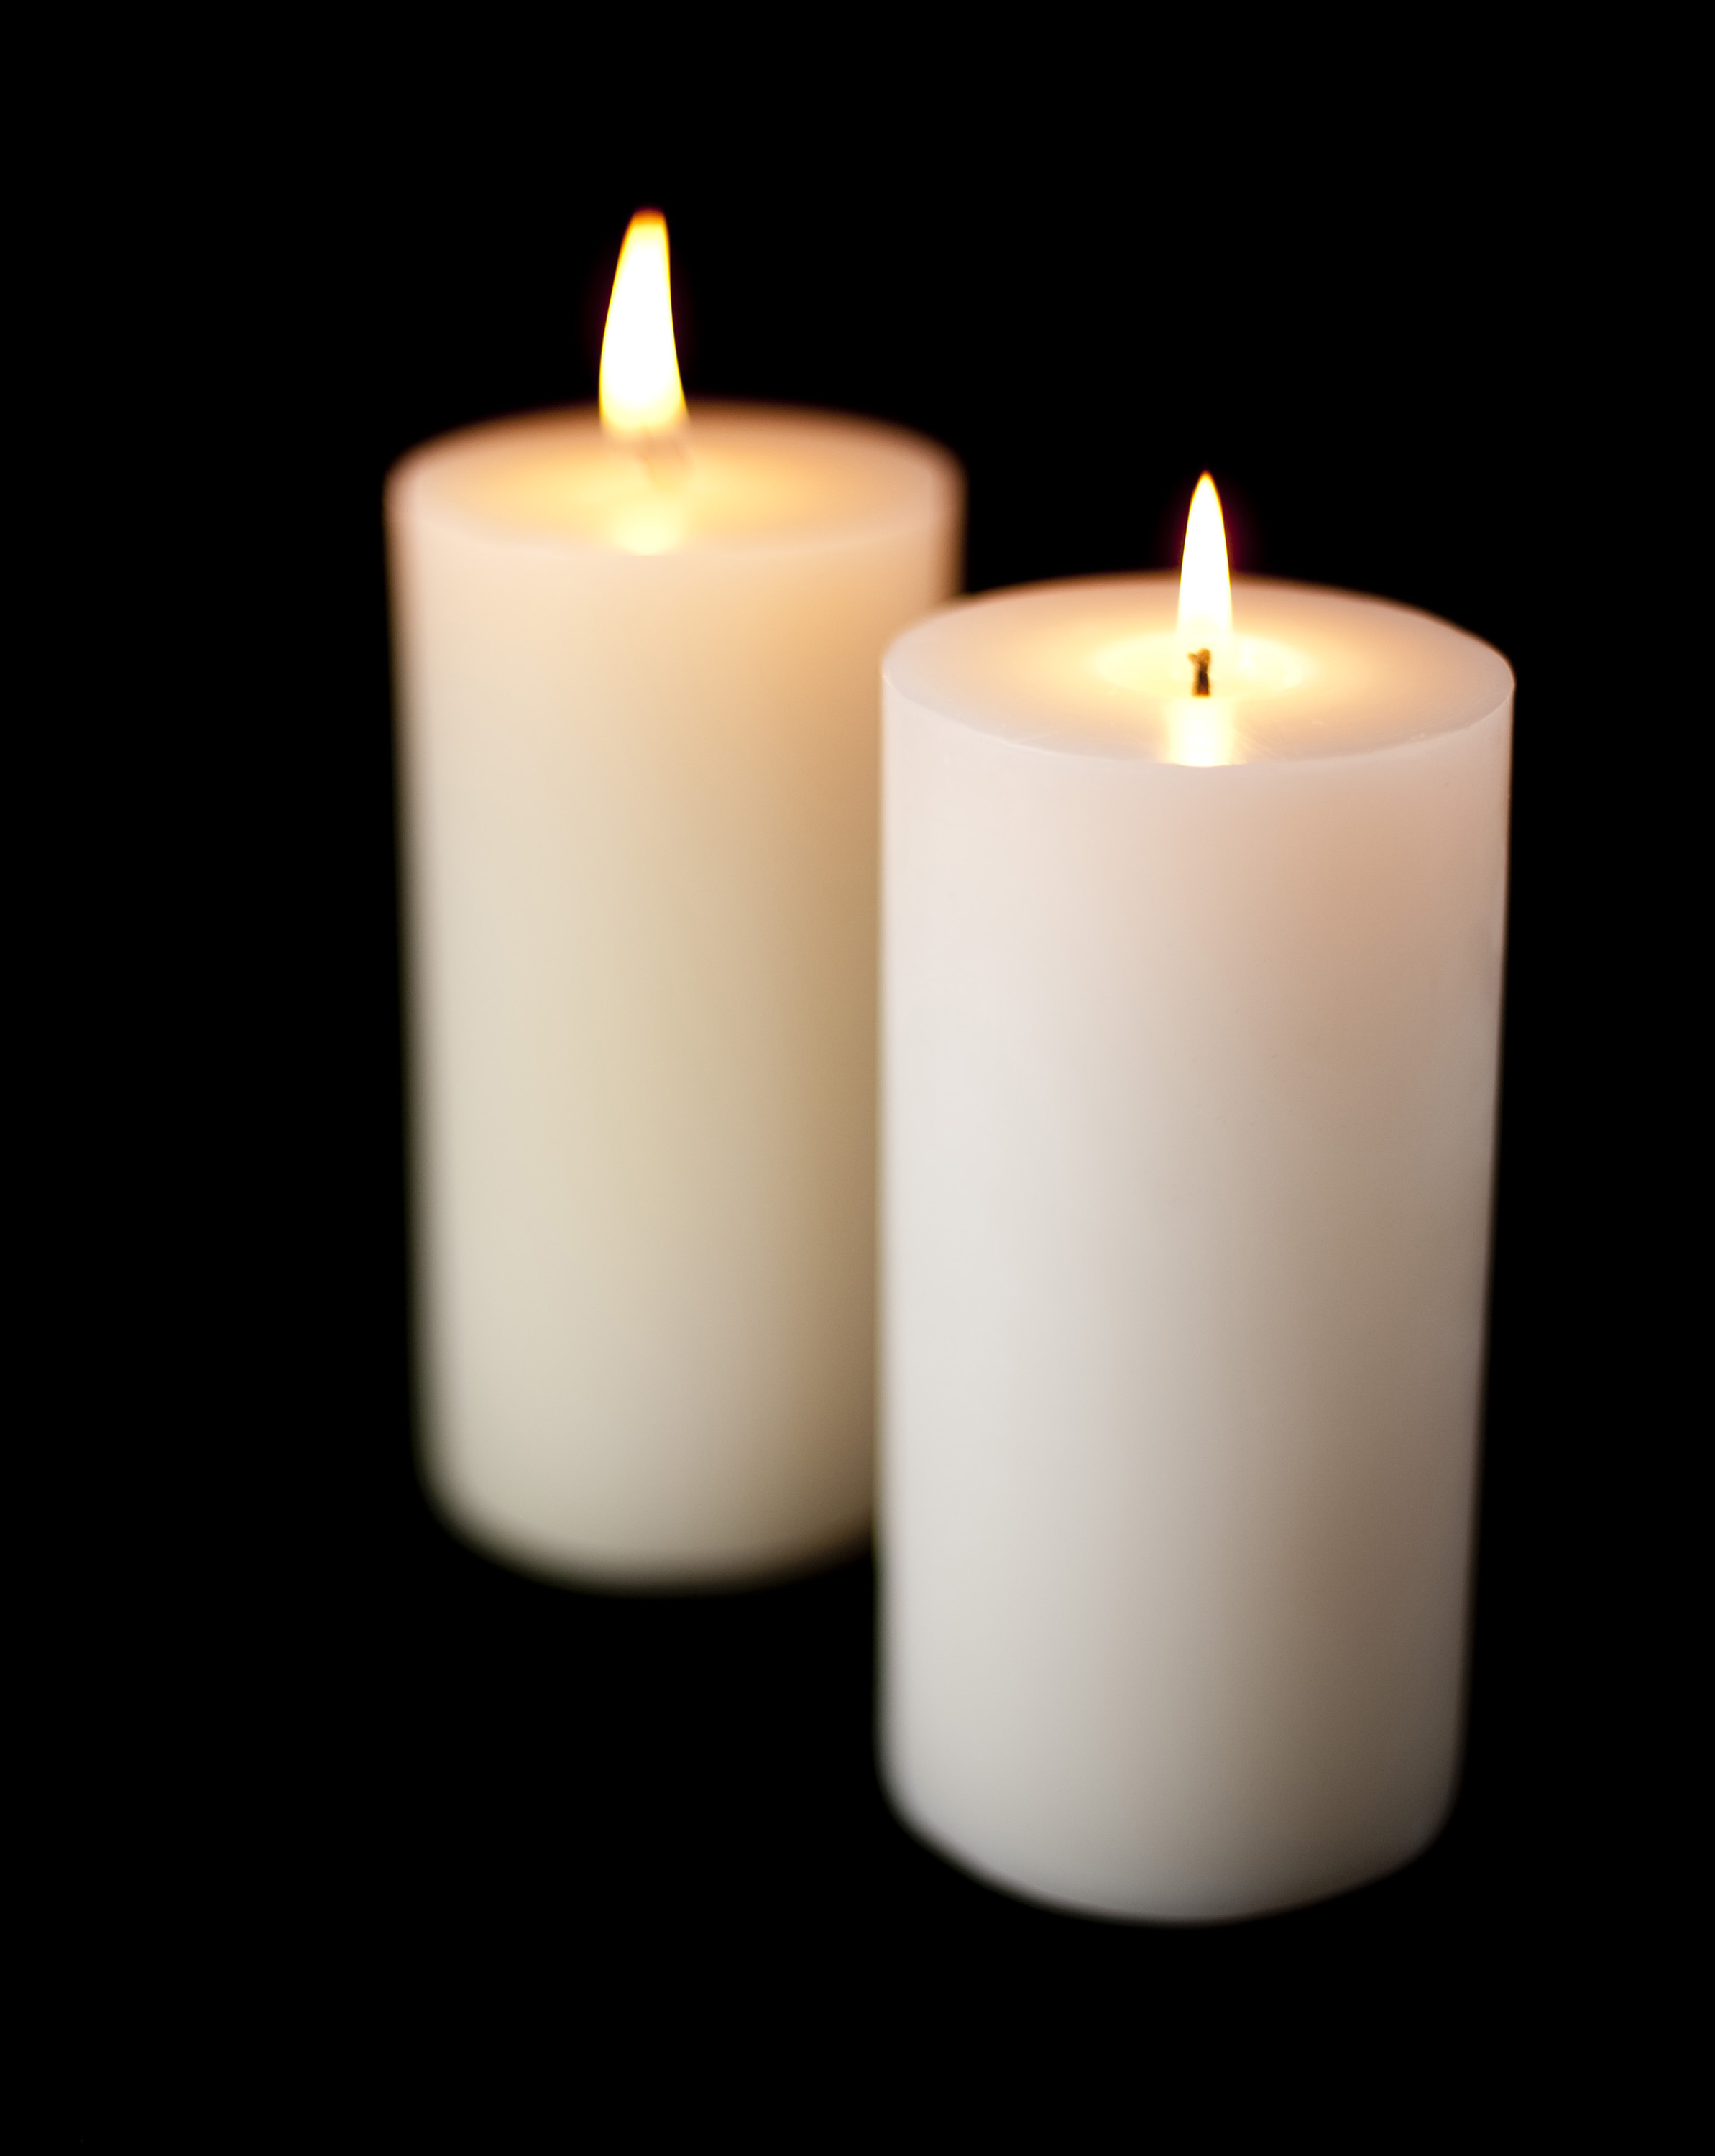 large white candles burning against a dark backdrop, pictured with a narrow depth of field to create a cosy homely effect